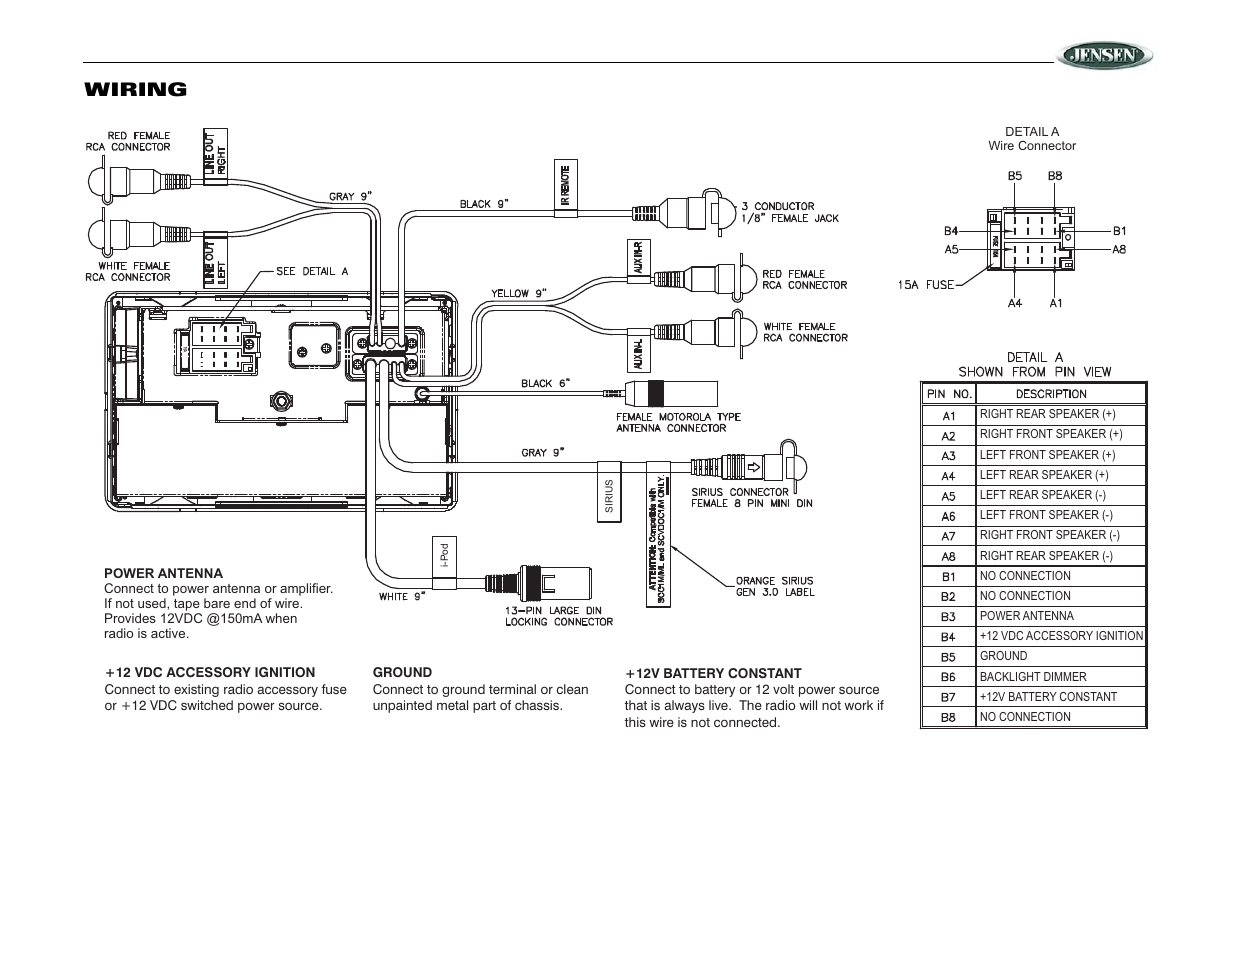 Jensen Din 8 Pin Free Download Connector Diagram Wiring Schematic Jrv210 User Manual Page 5 20 Diaphragm Audio At